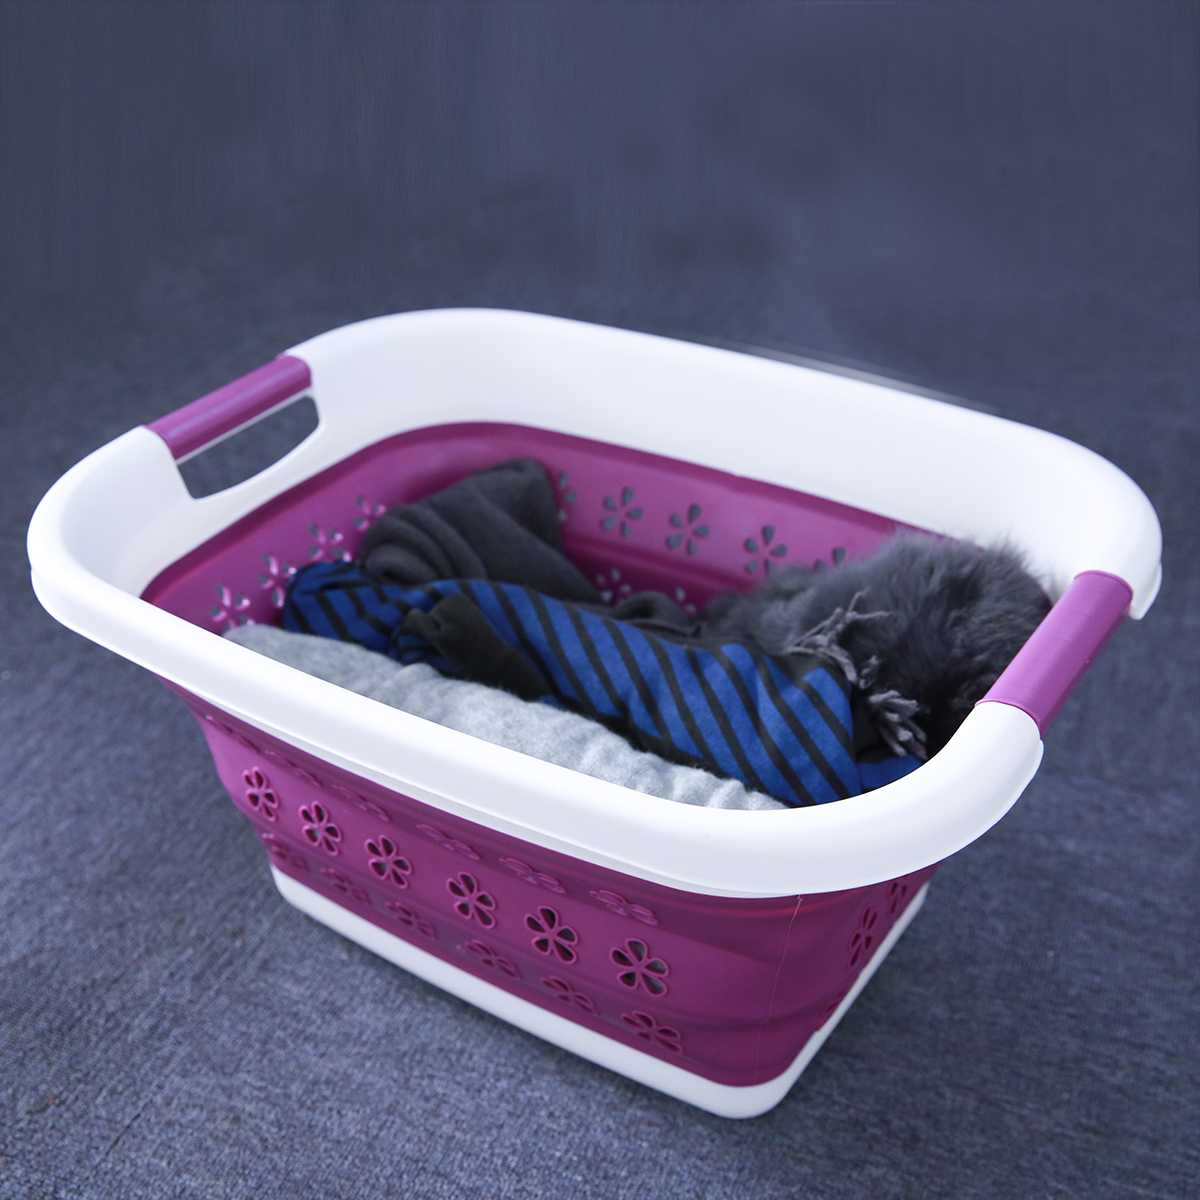 Foldable Purple Storage Dirty Clothing Baskets Large Collapsible Laundry Basket Silicone Wash Clothes Fruits Bin Space Saving